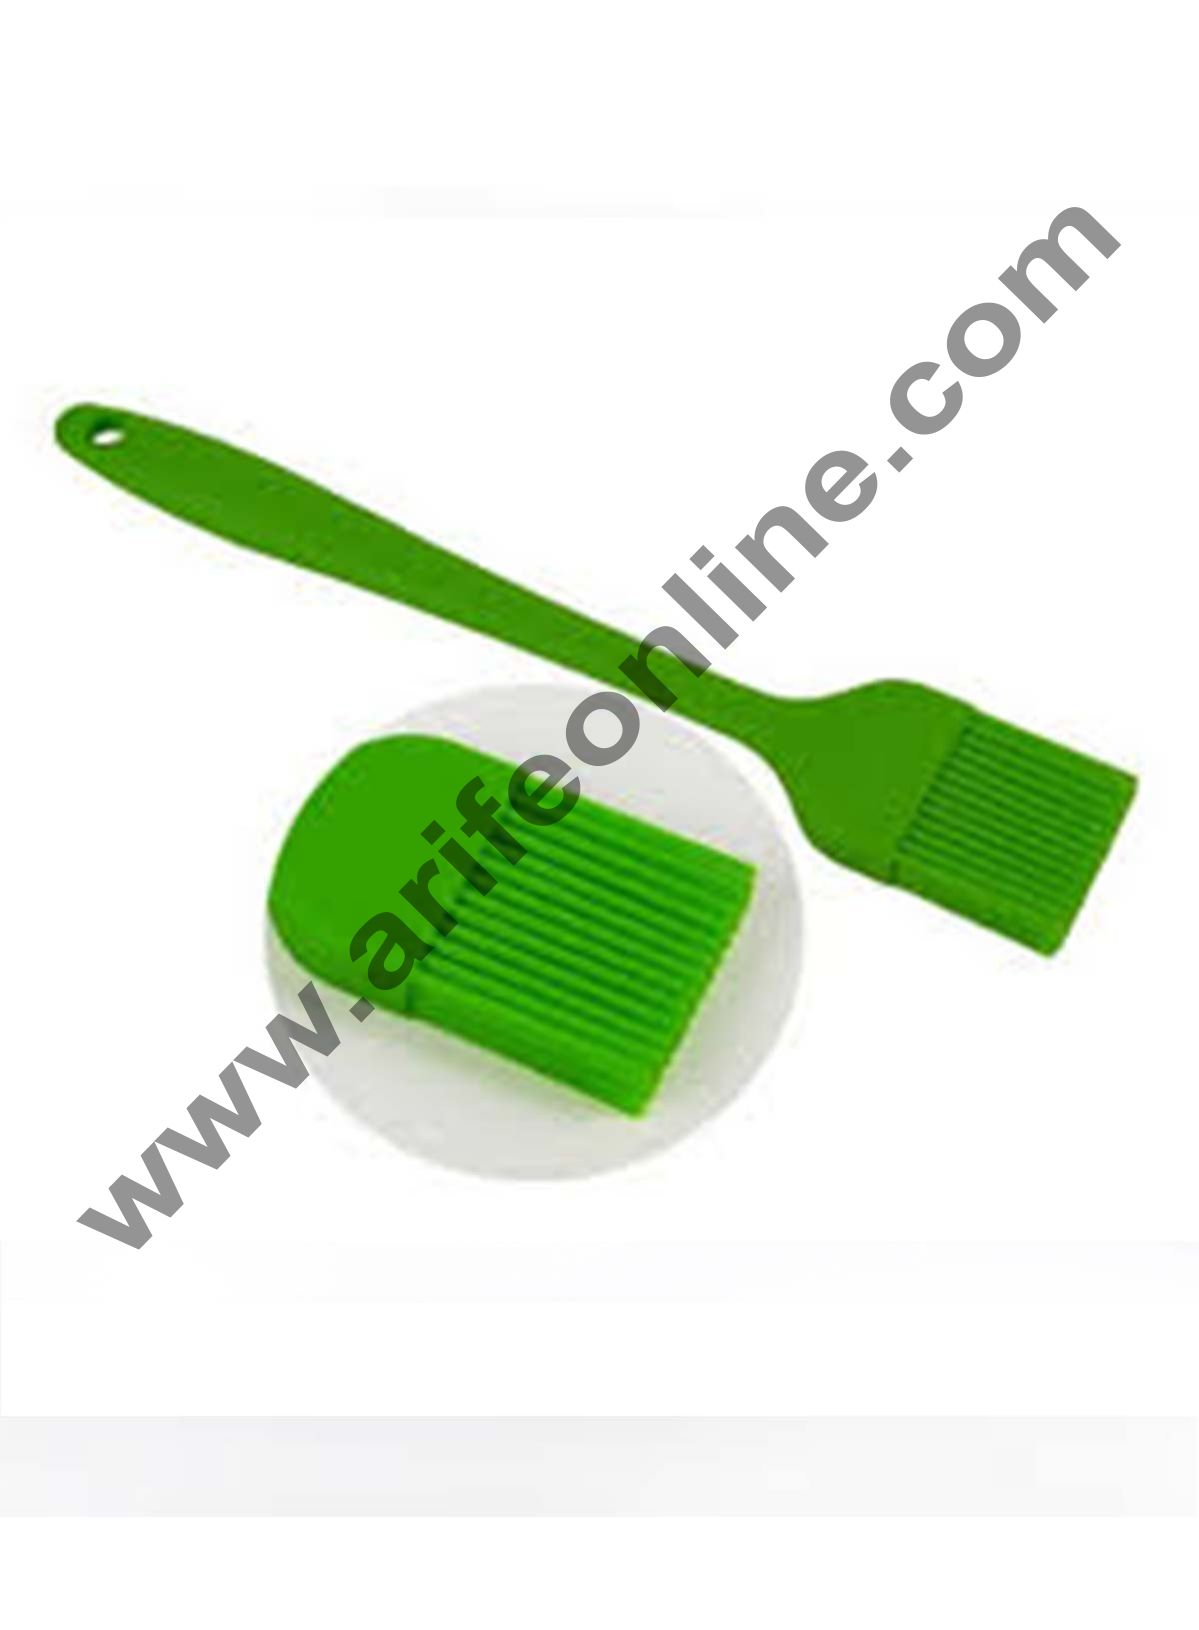 Cake Decor 1Pcs Silicone Medium Brush